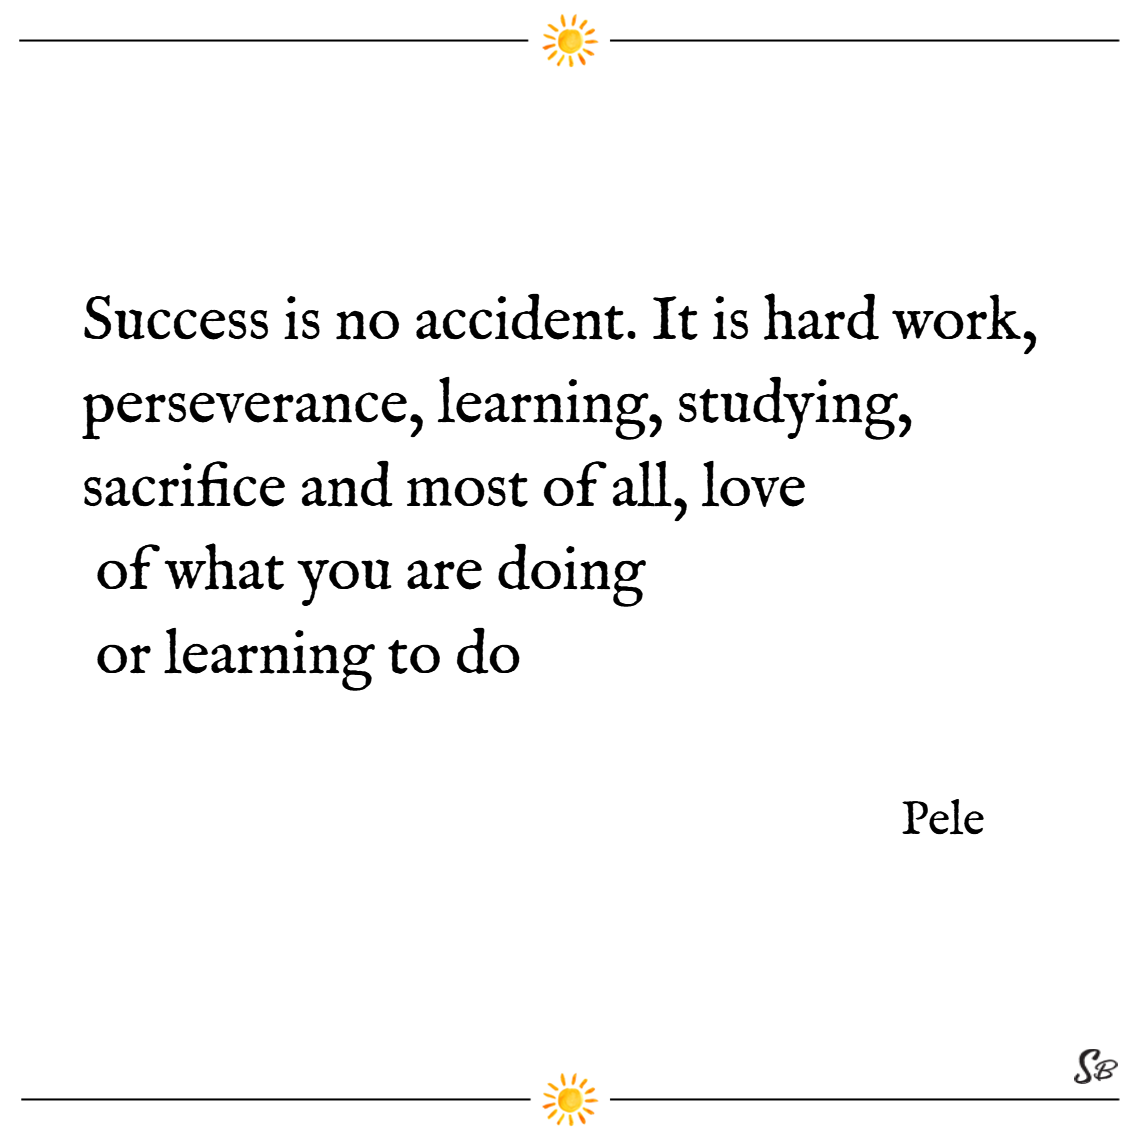 Success is no accident. it is hard work, perseverance, learning, studying, sacrifice and most of all, love of what you are doing or learning to do. – pele